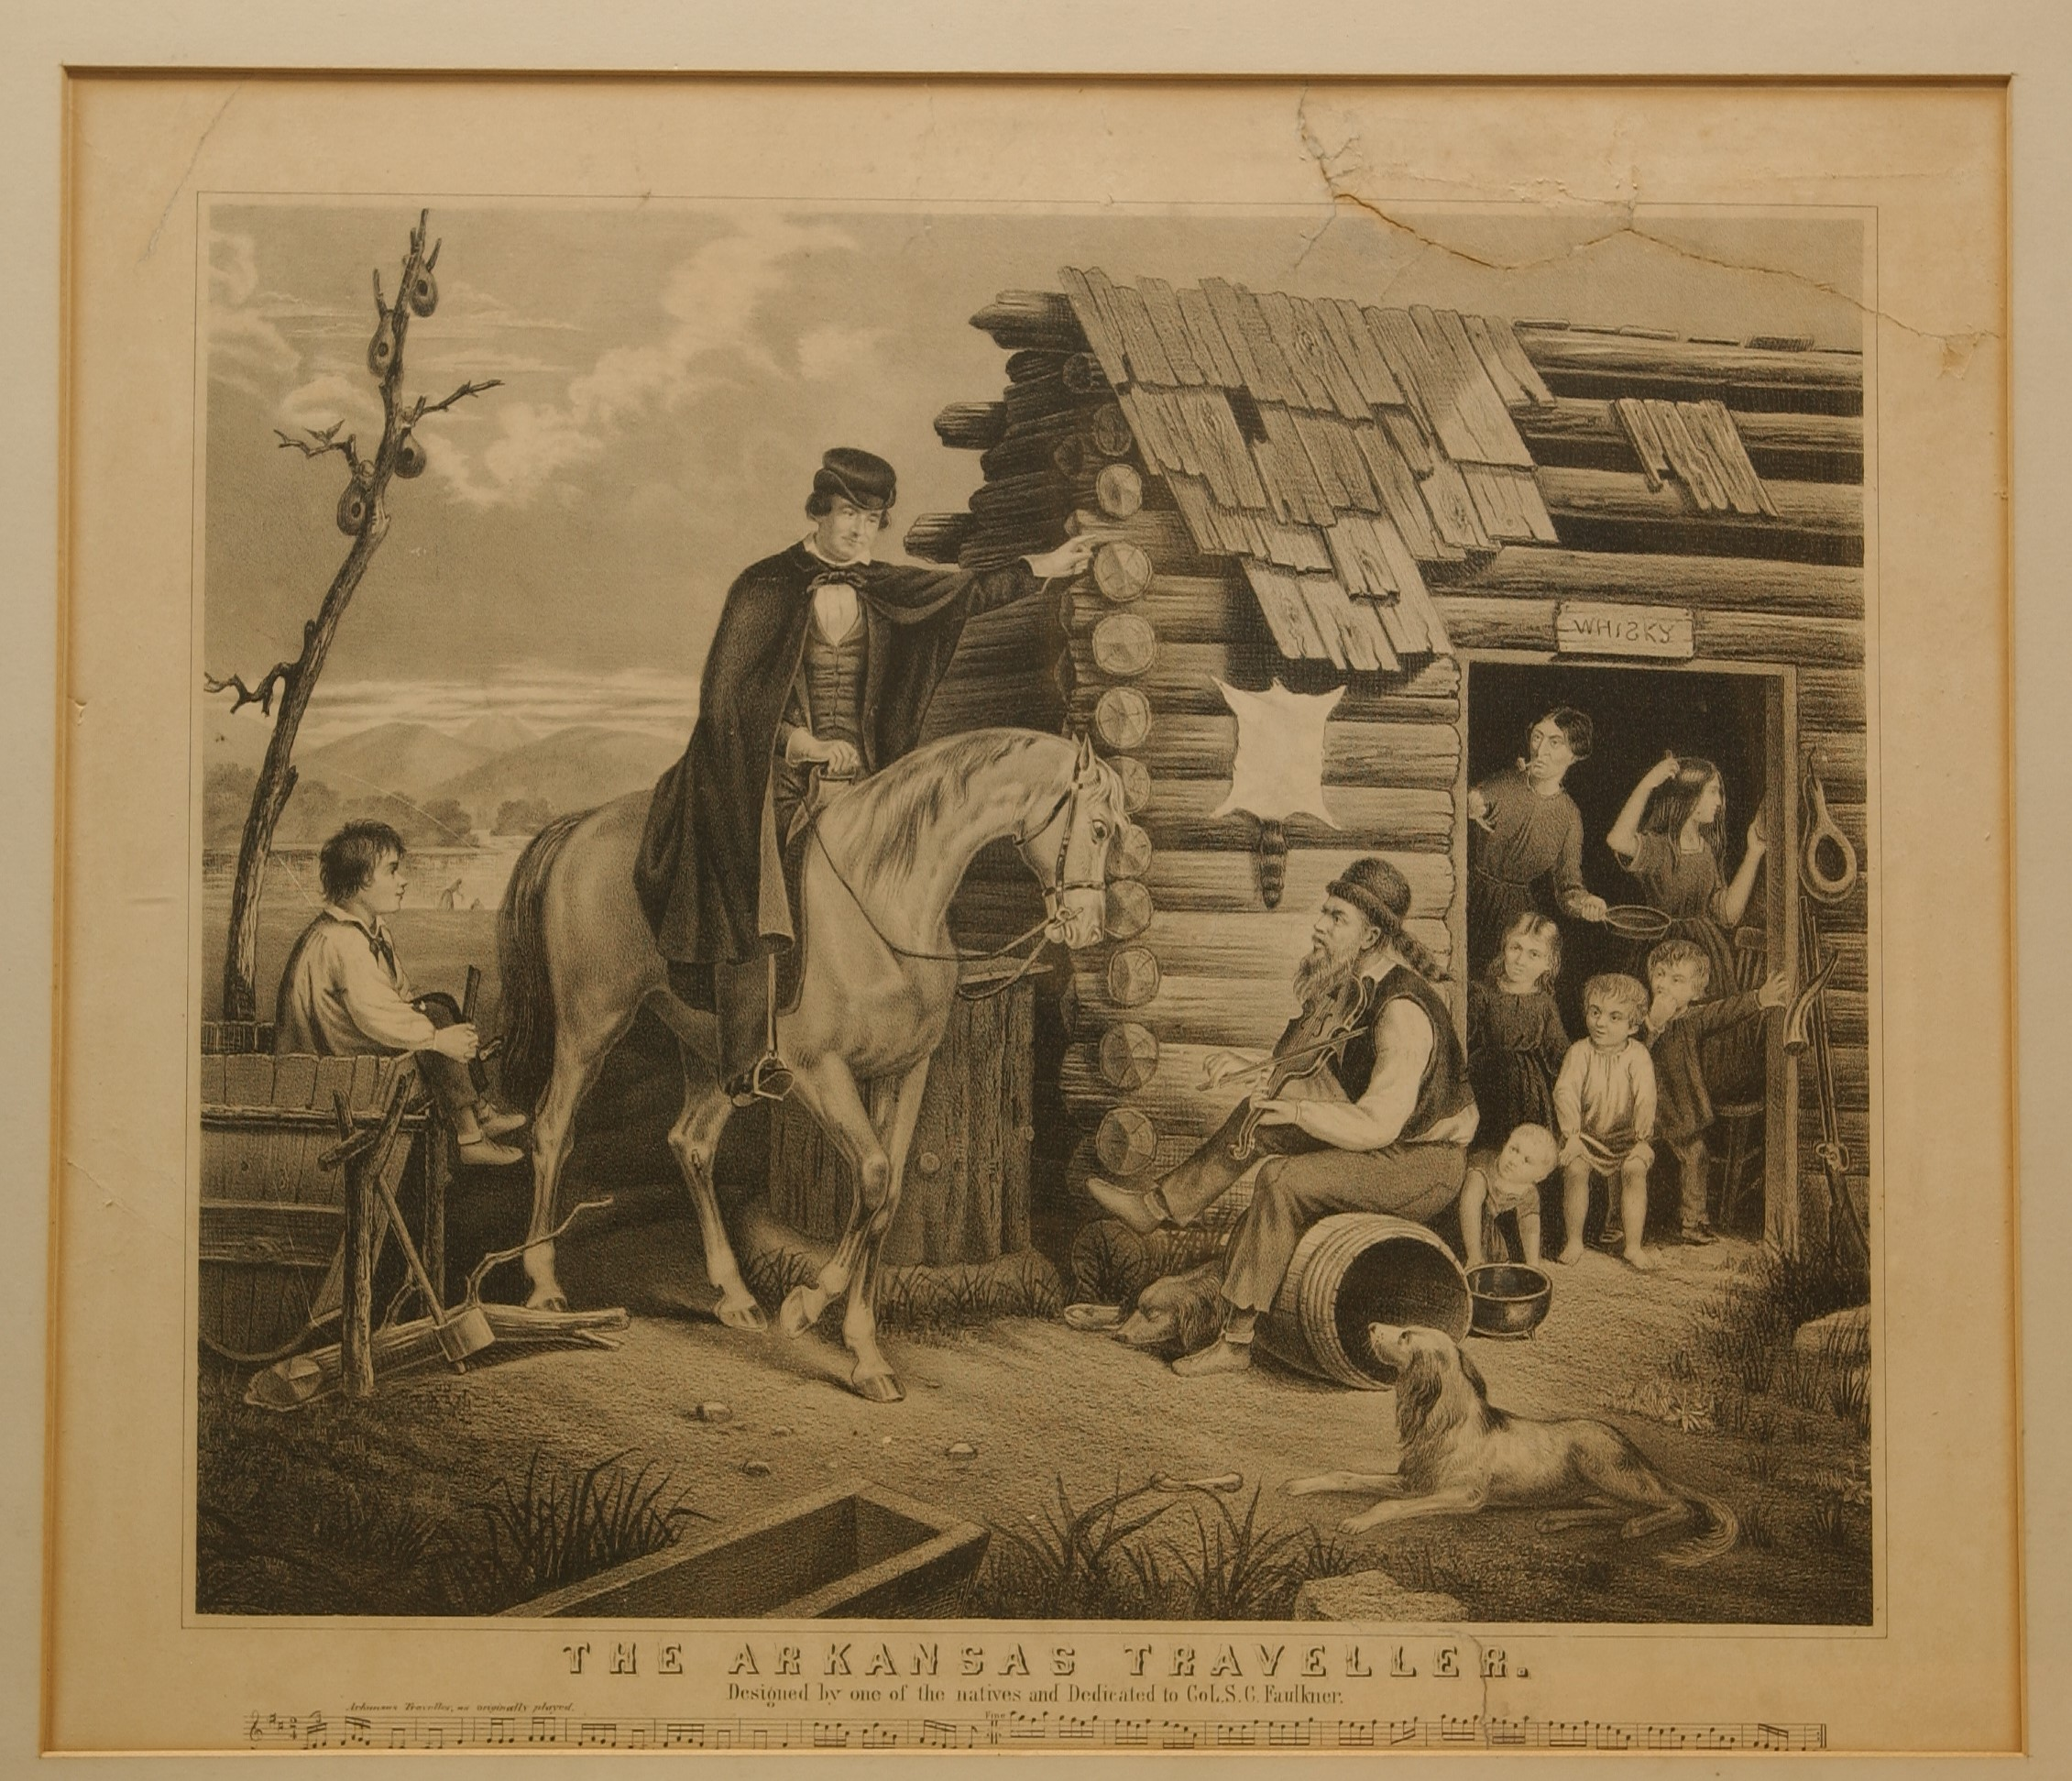 Framed print of The Arkansas Traveler with man on horse greeting eight people at a cabin